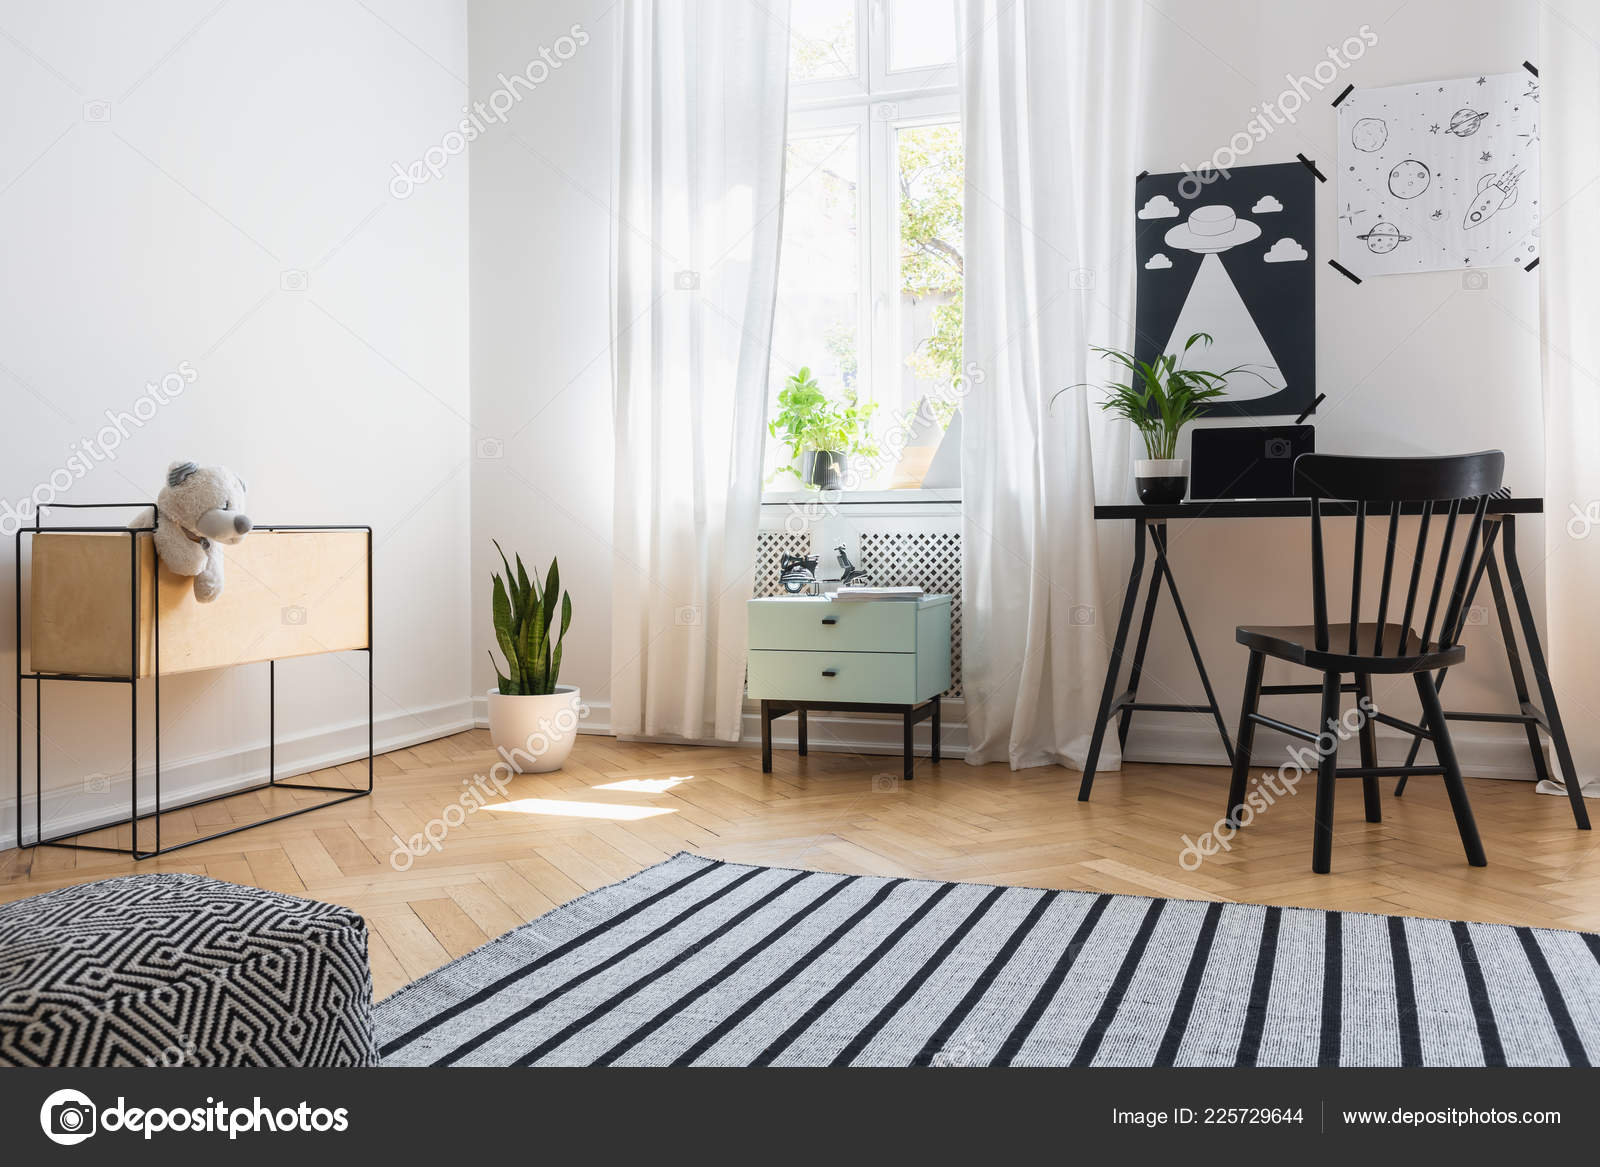 Black And White Teenage Girl Room Ideas Black Chair Desk White Teenager Room Interior Posters Striped Carpet Stock Photo C Photographee Eu 225729644